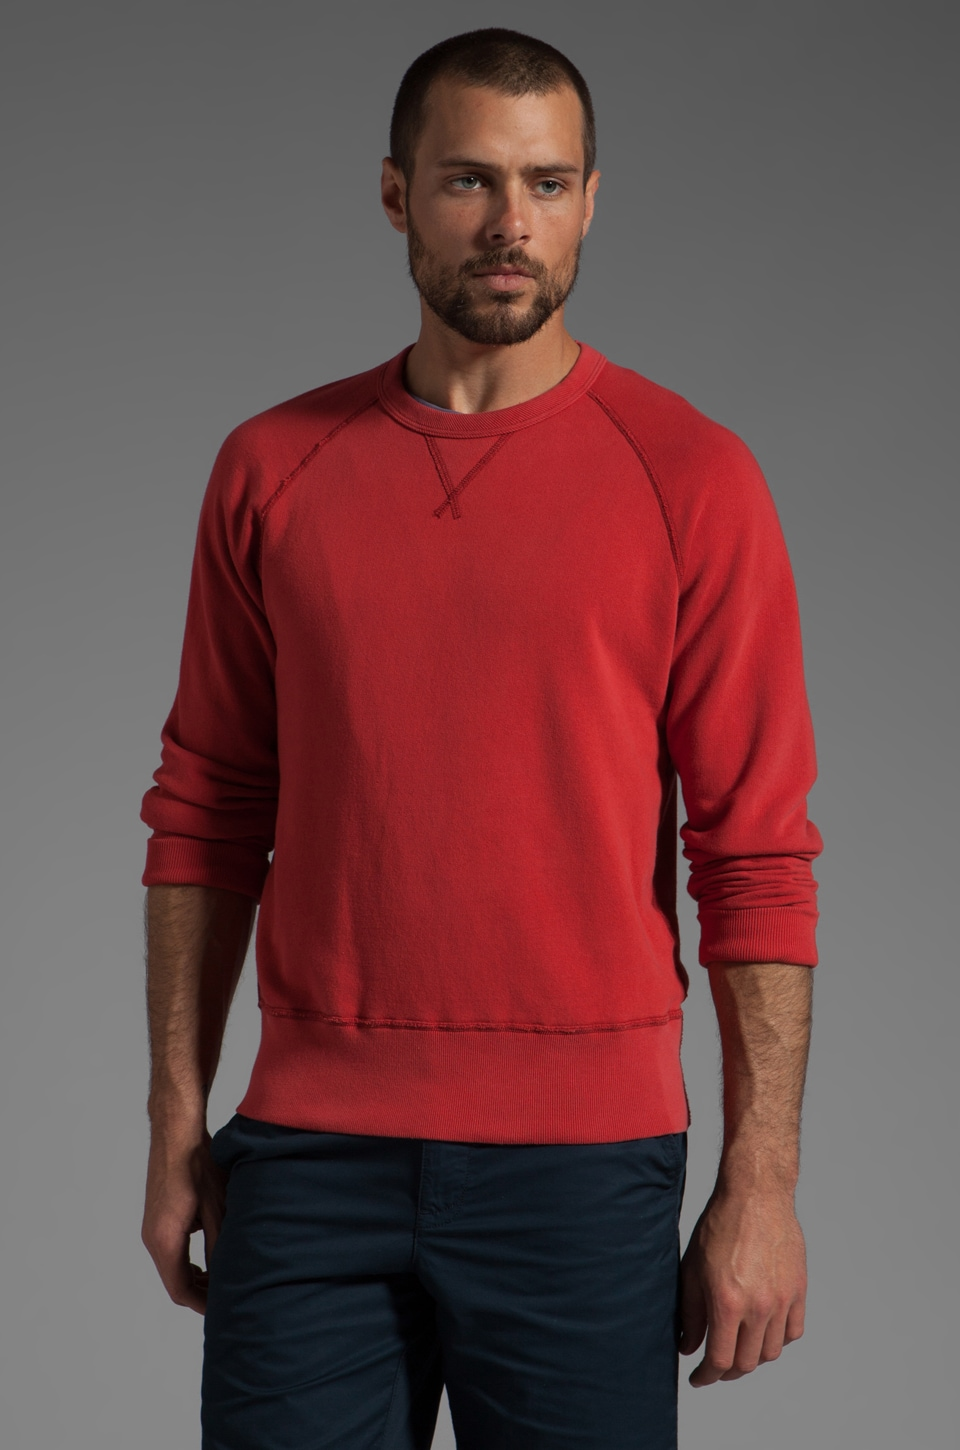 TODD SNYDER Crew Sweatshirt in Faded Red